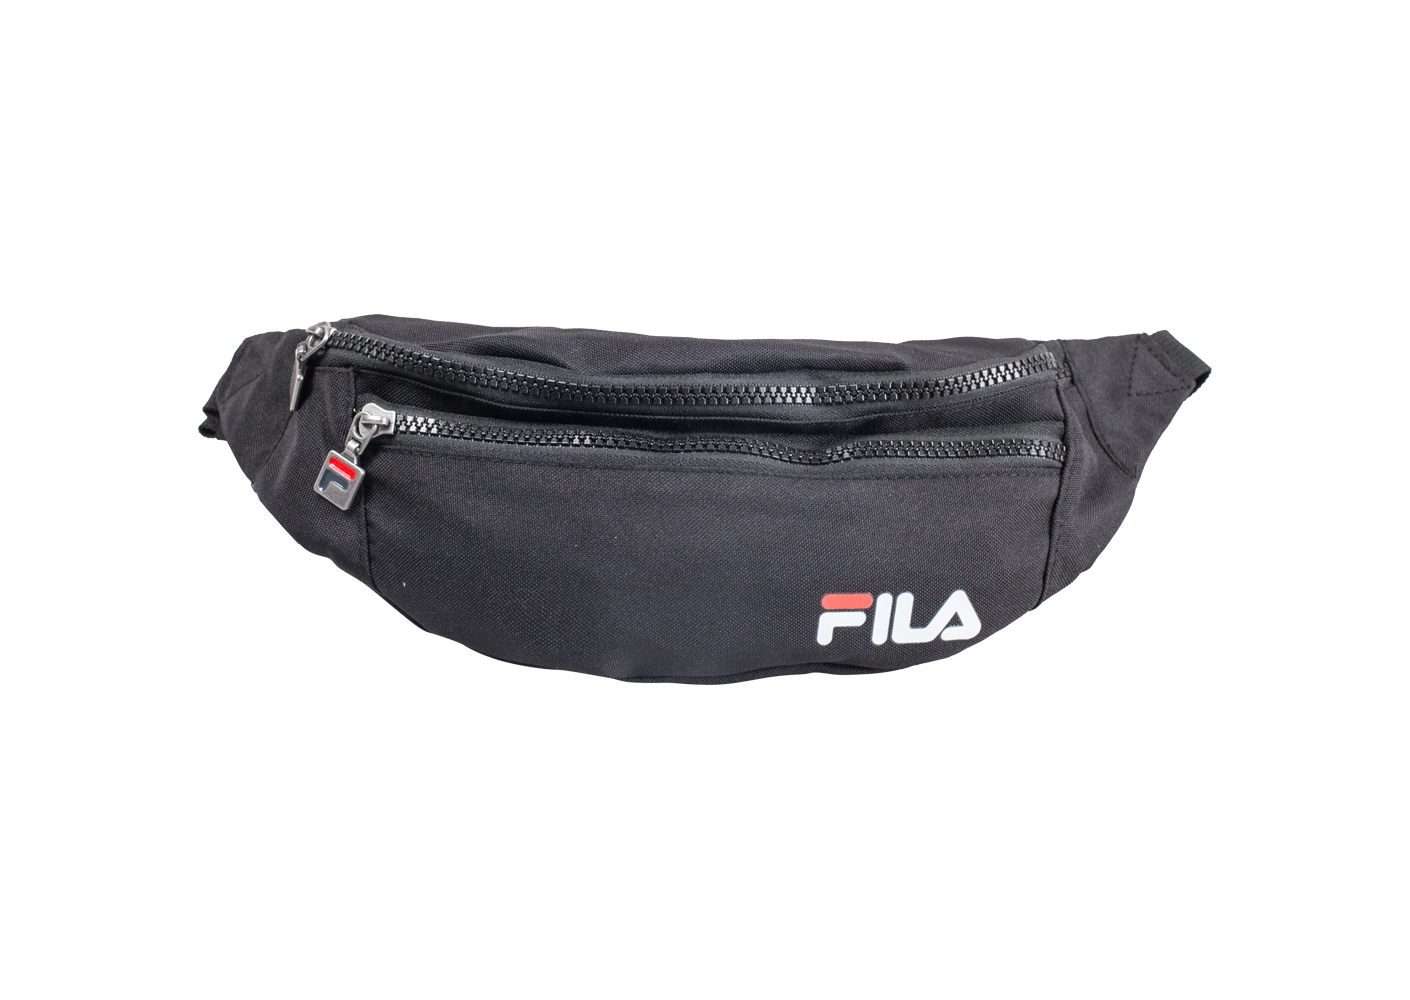 fila sac banane noir sacs sacoches chausport. Black Bedroom Furniture Sets. Home Design Ideas